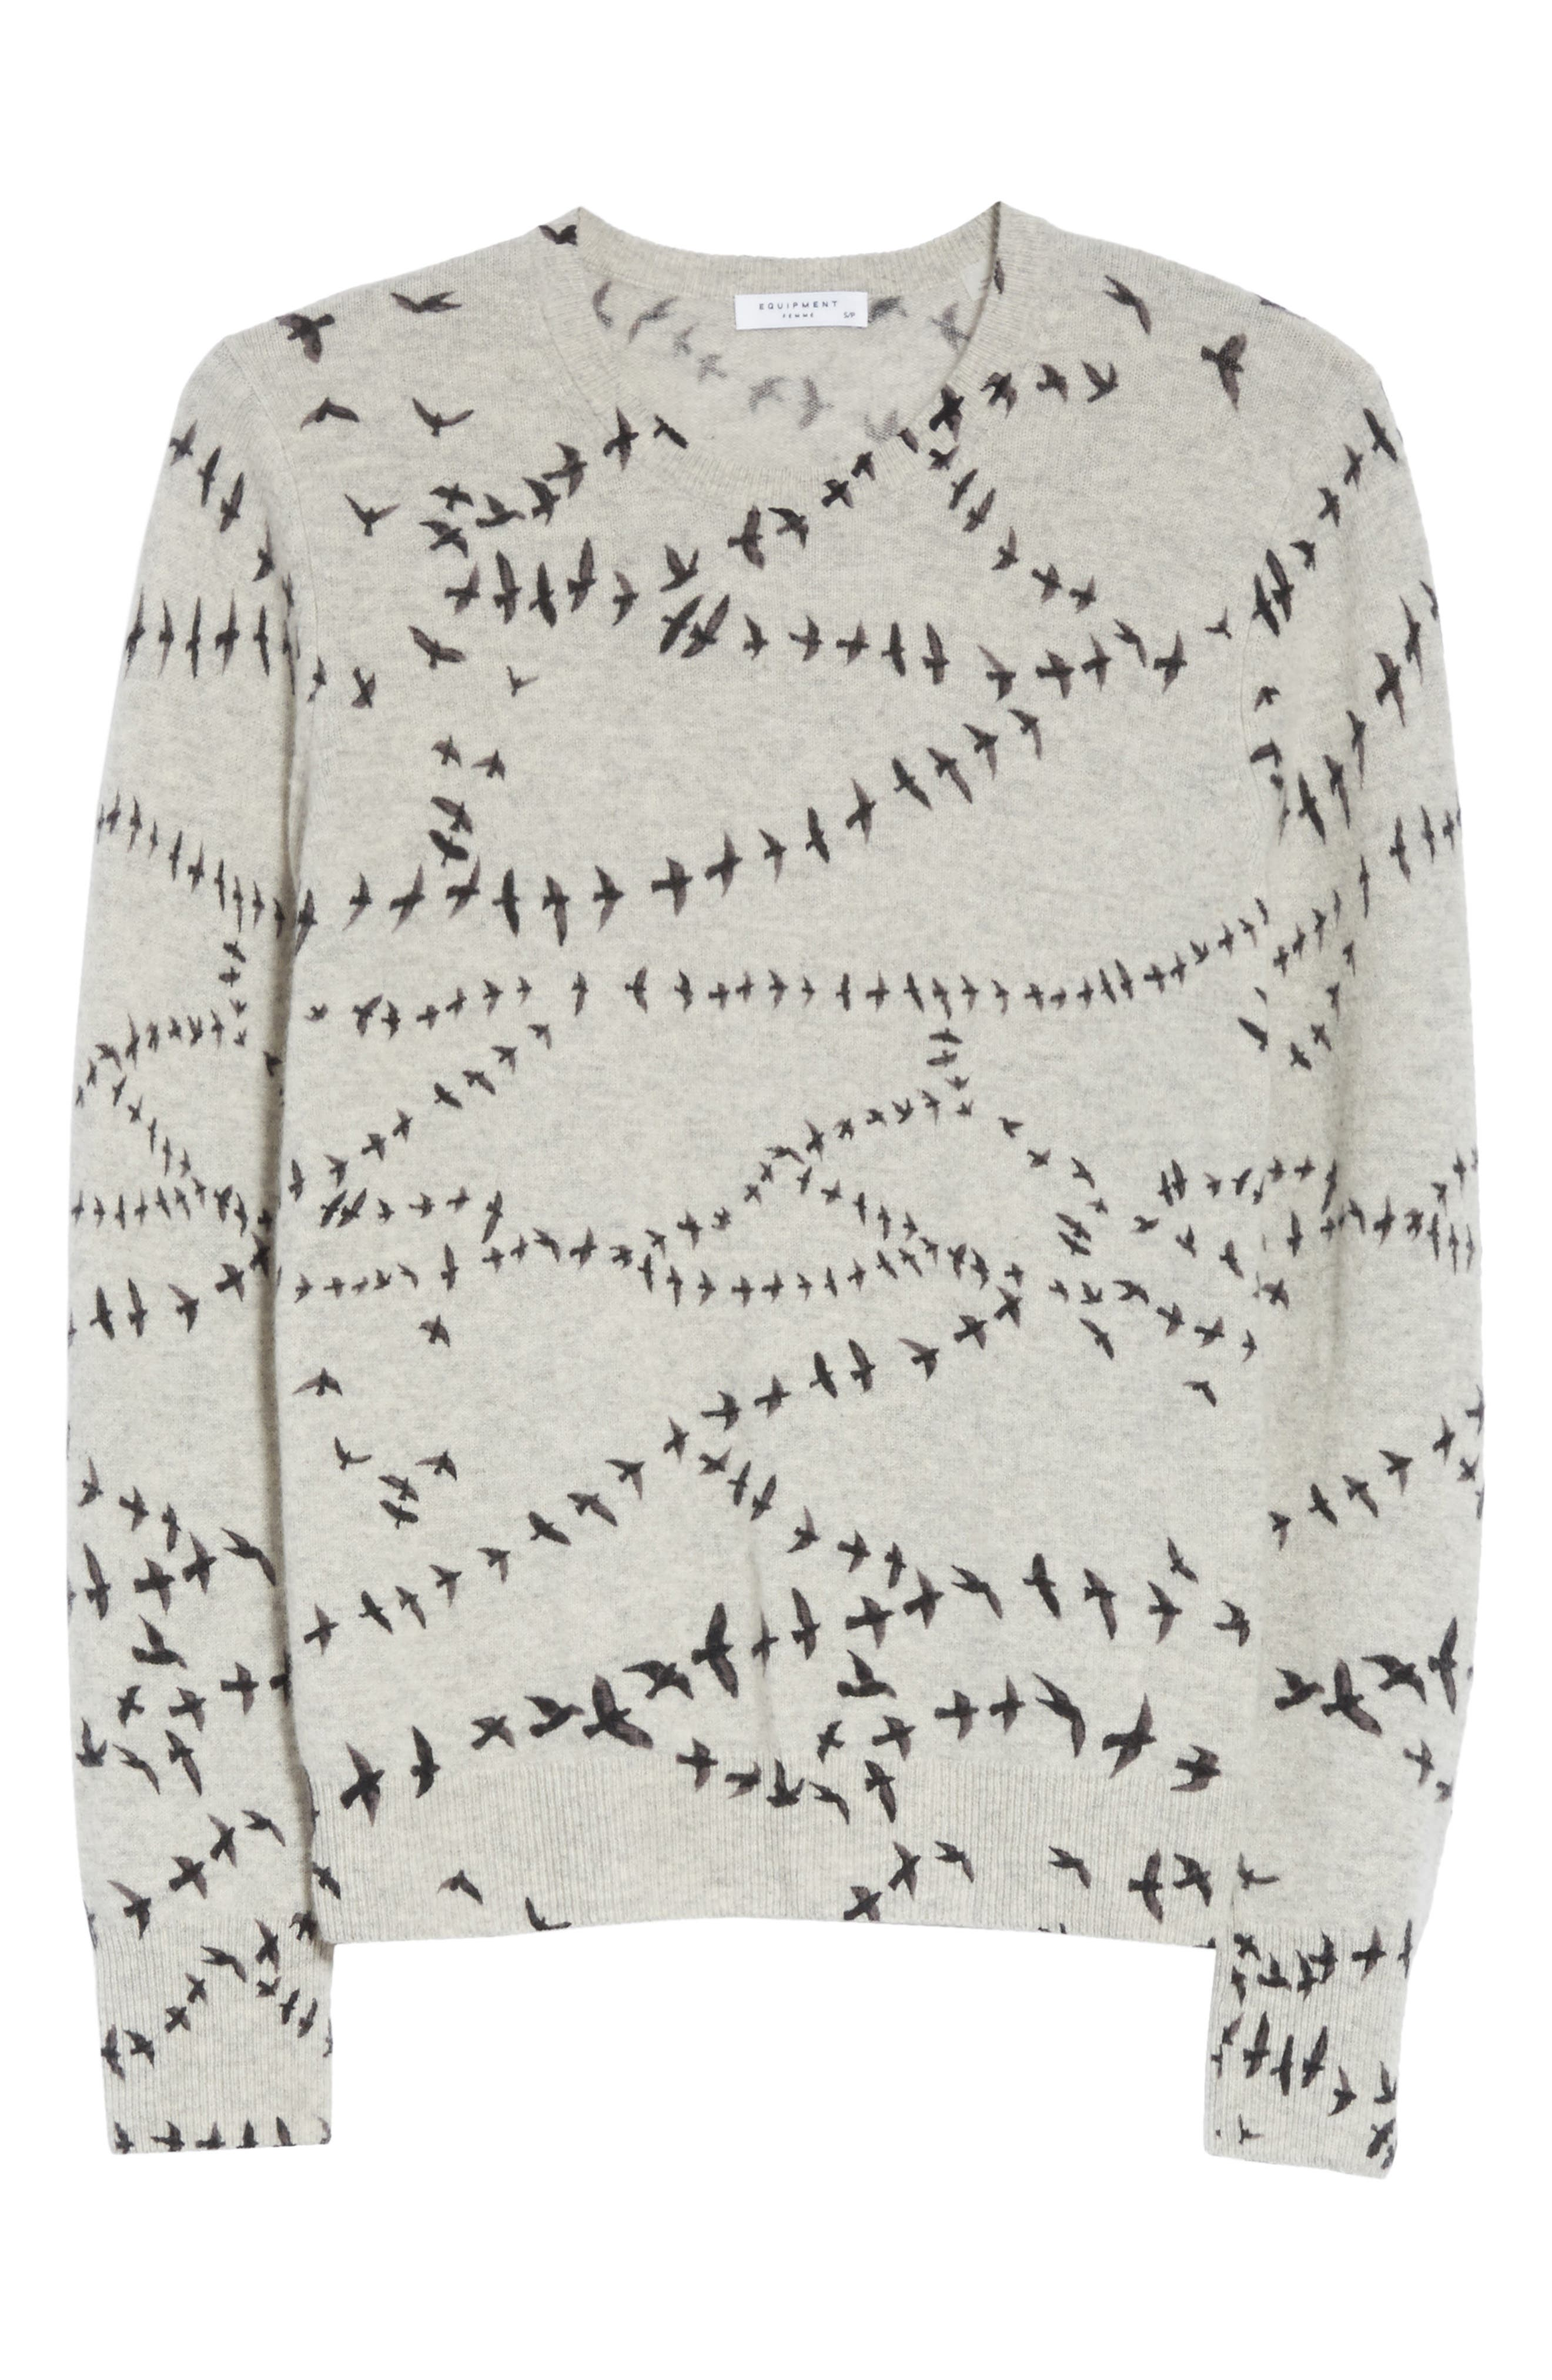 Shane Bird Print Cashmere Sweater,                             Alternate thumbnail 6, color,                             Light Heather Grey Multi